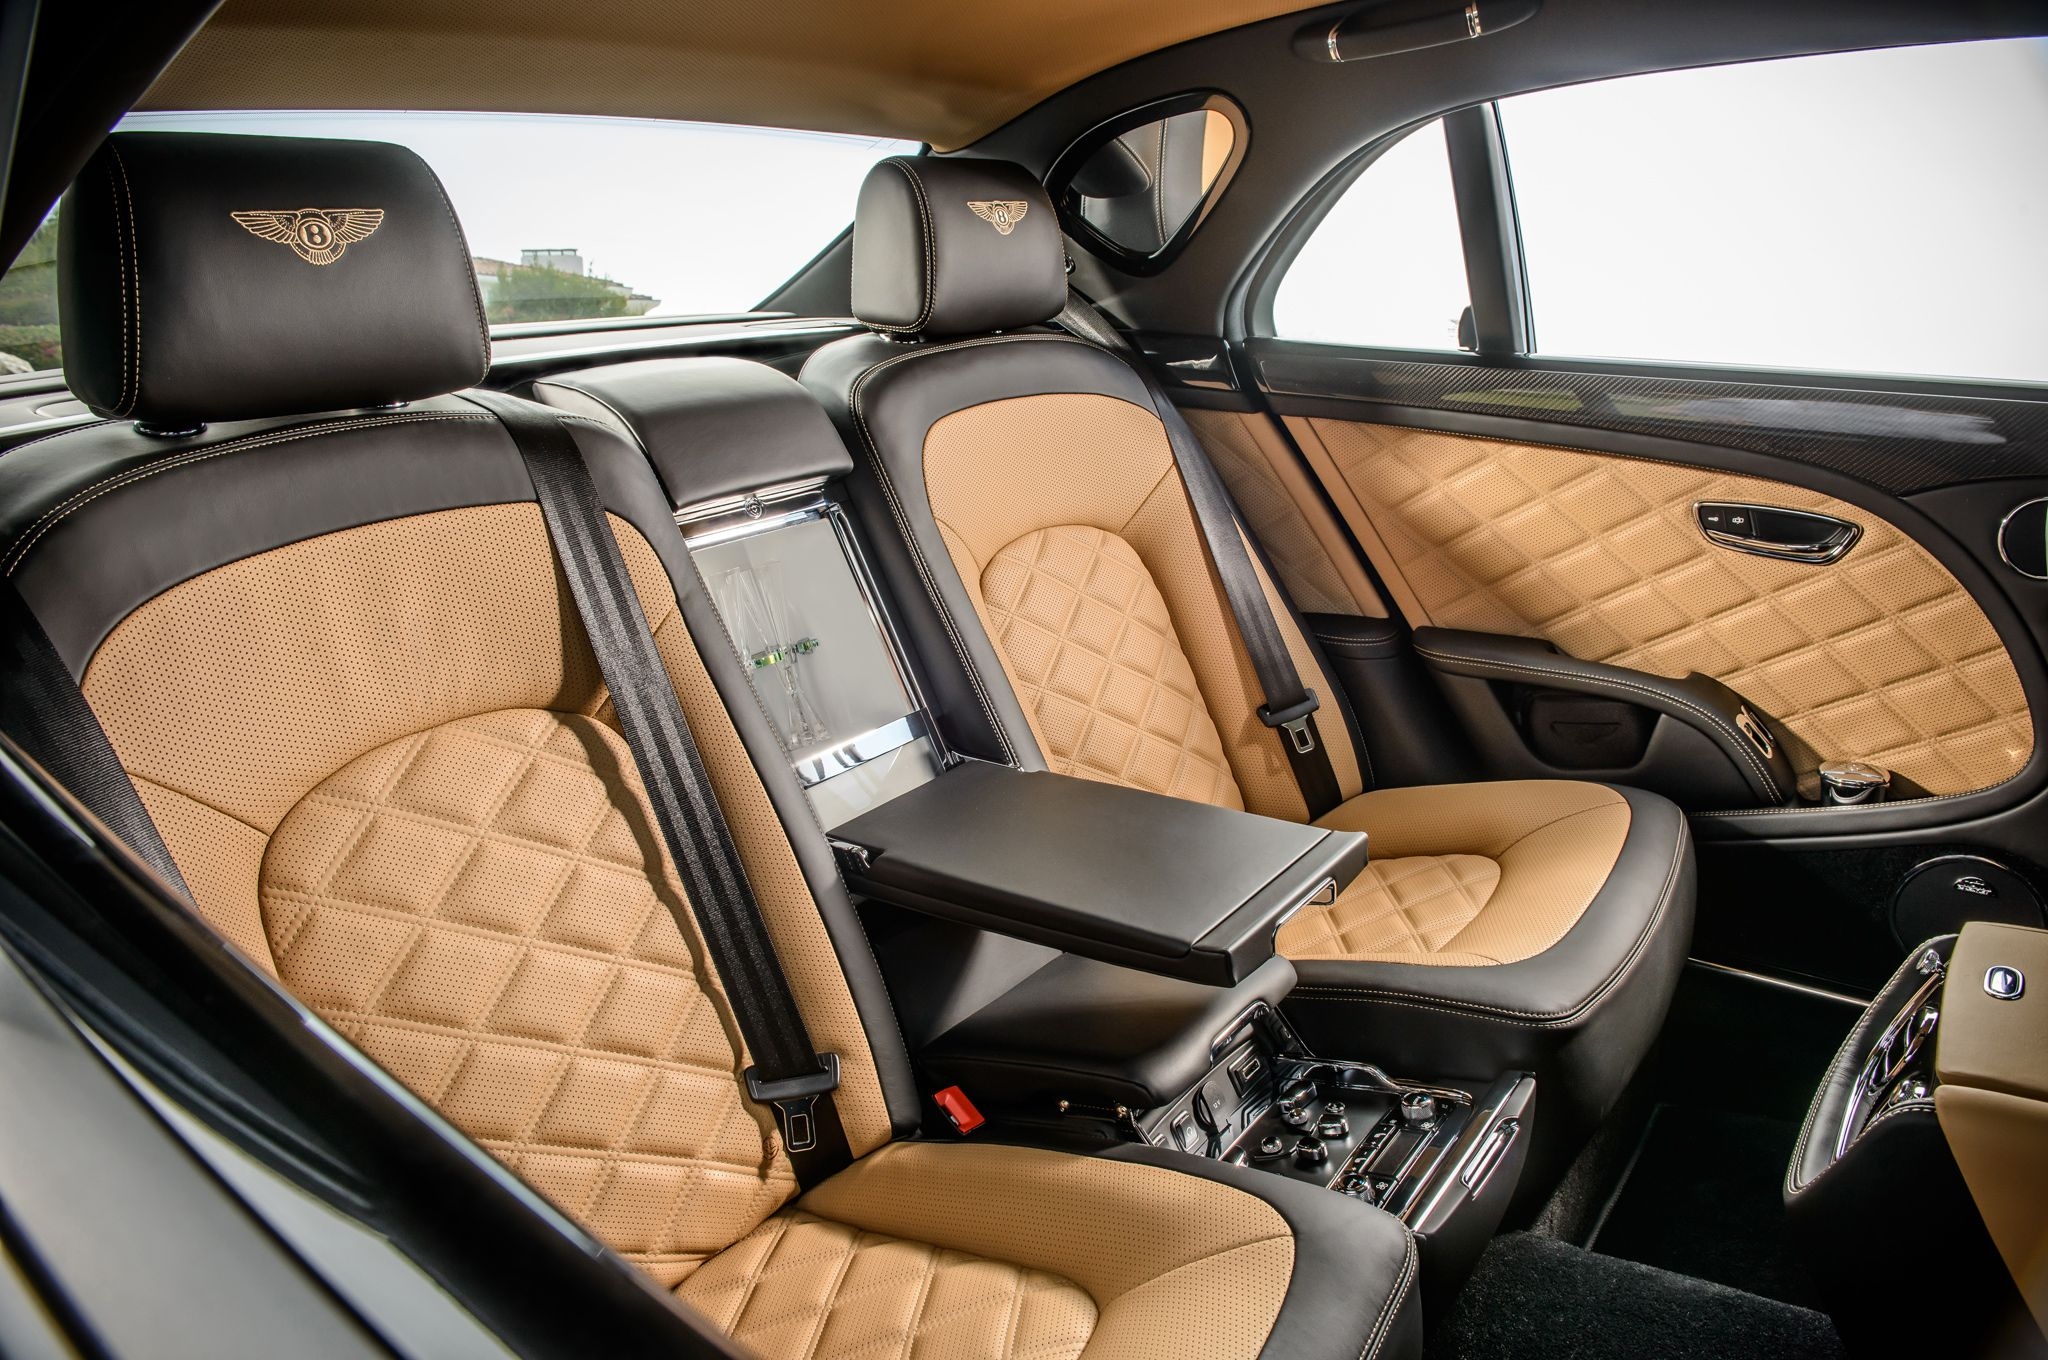 Leather Cover For Seat At Second Row With Sophiscticated Features